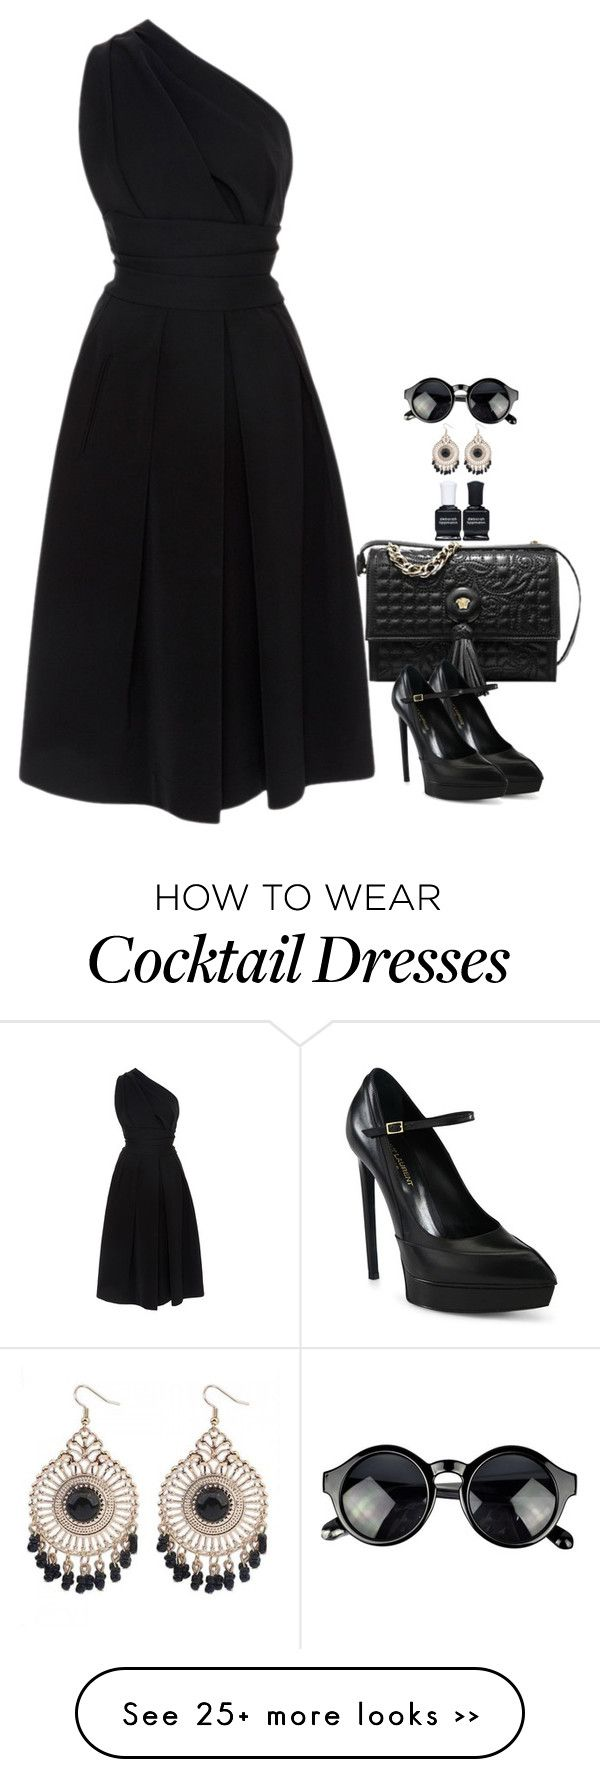 """Cocktail Dress"" by miki006 on Polyvore featuring Preen, Yves Saint Laurent and Deborah Lippmann"